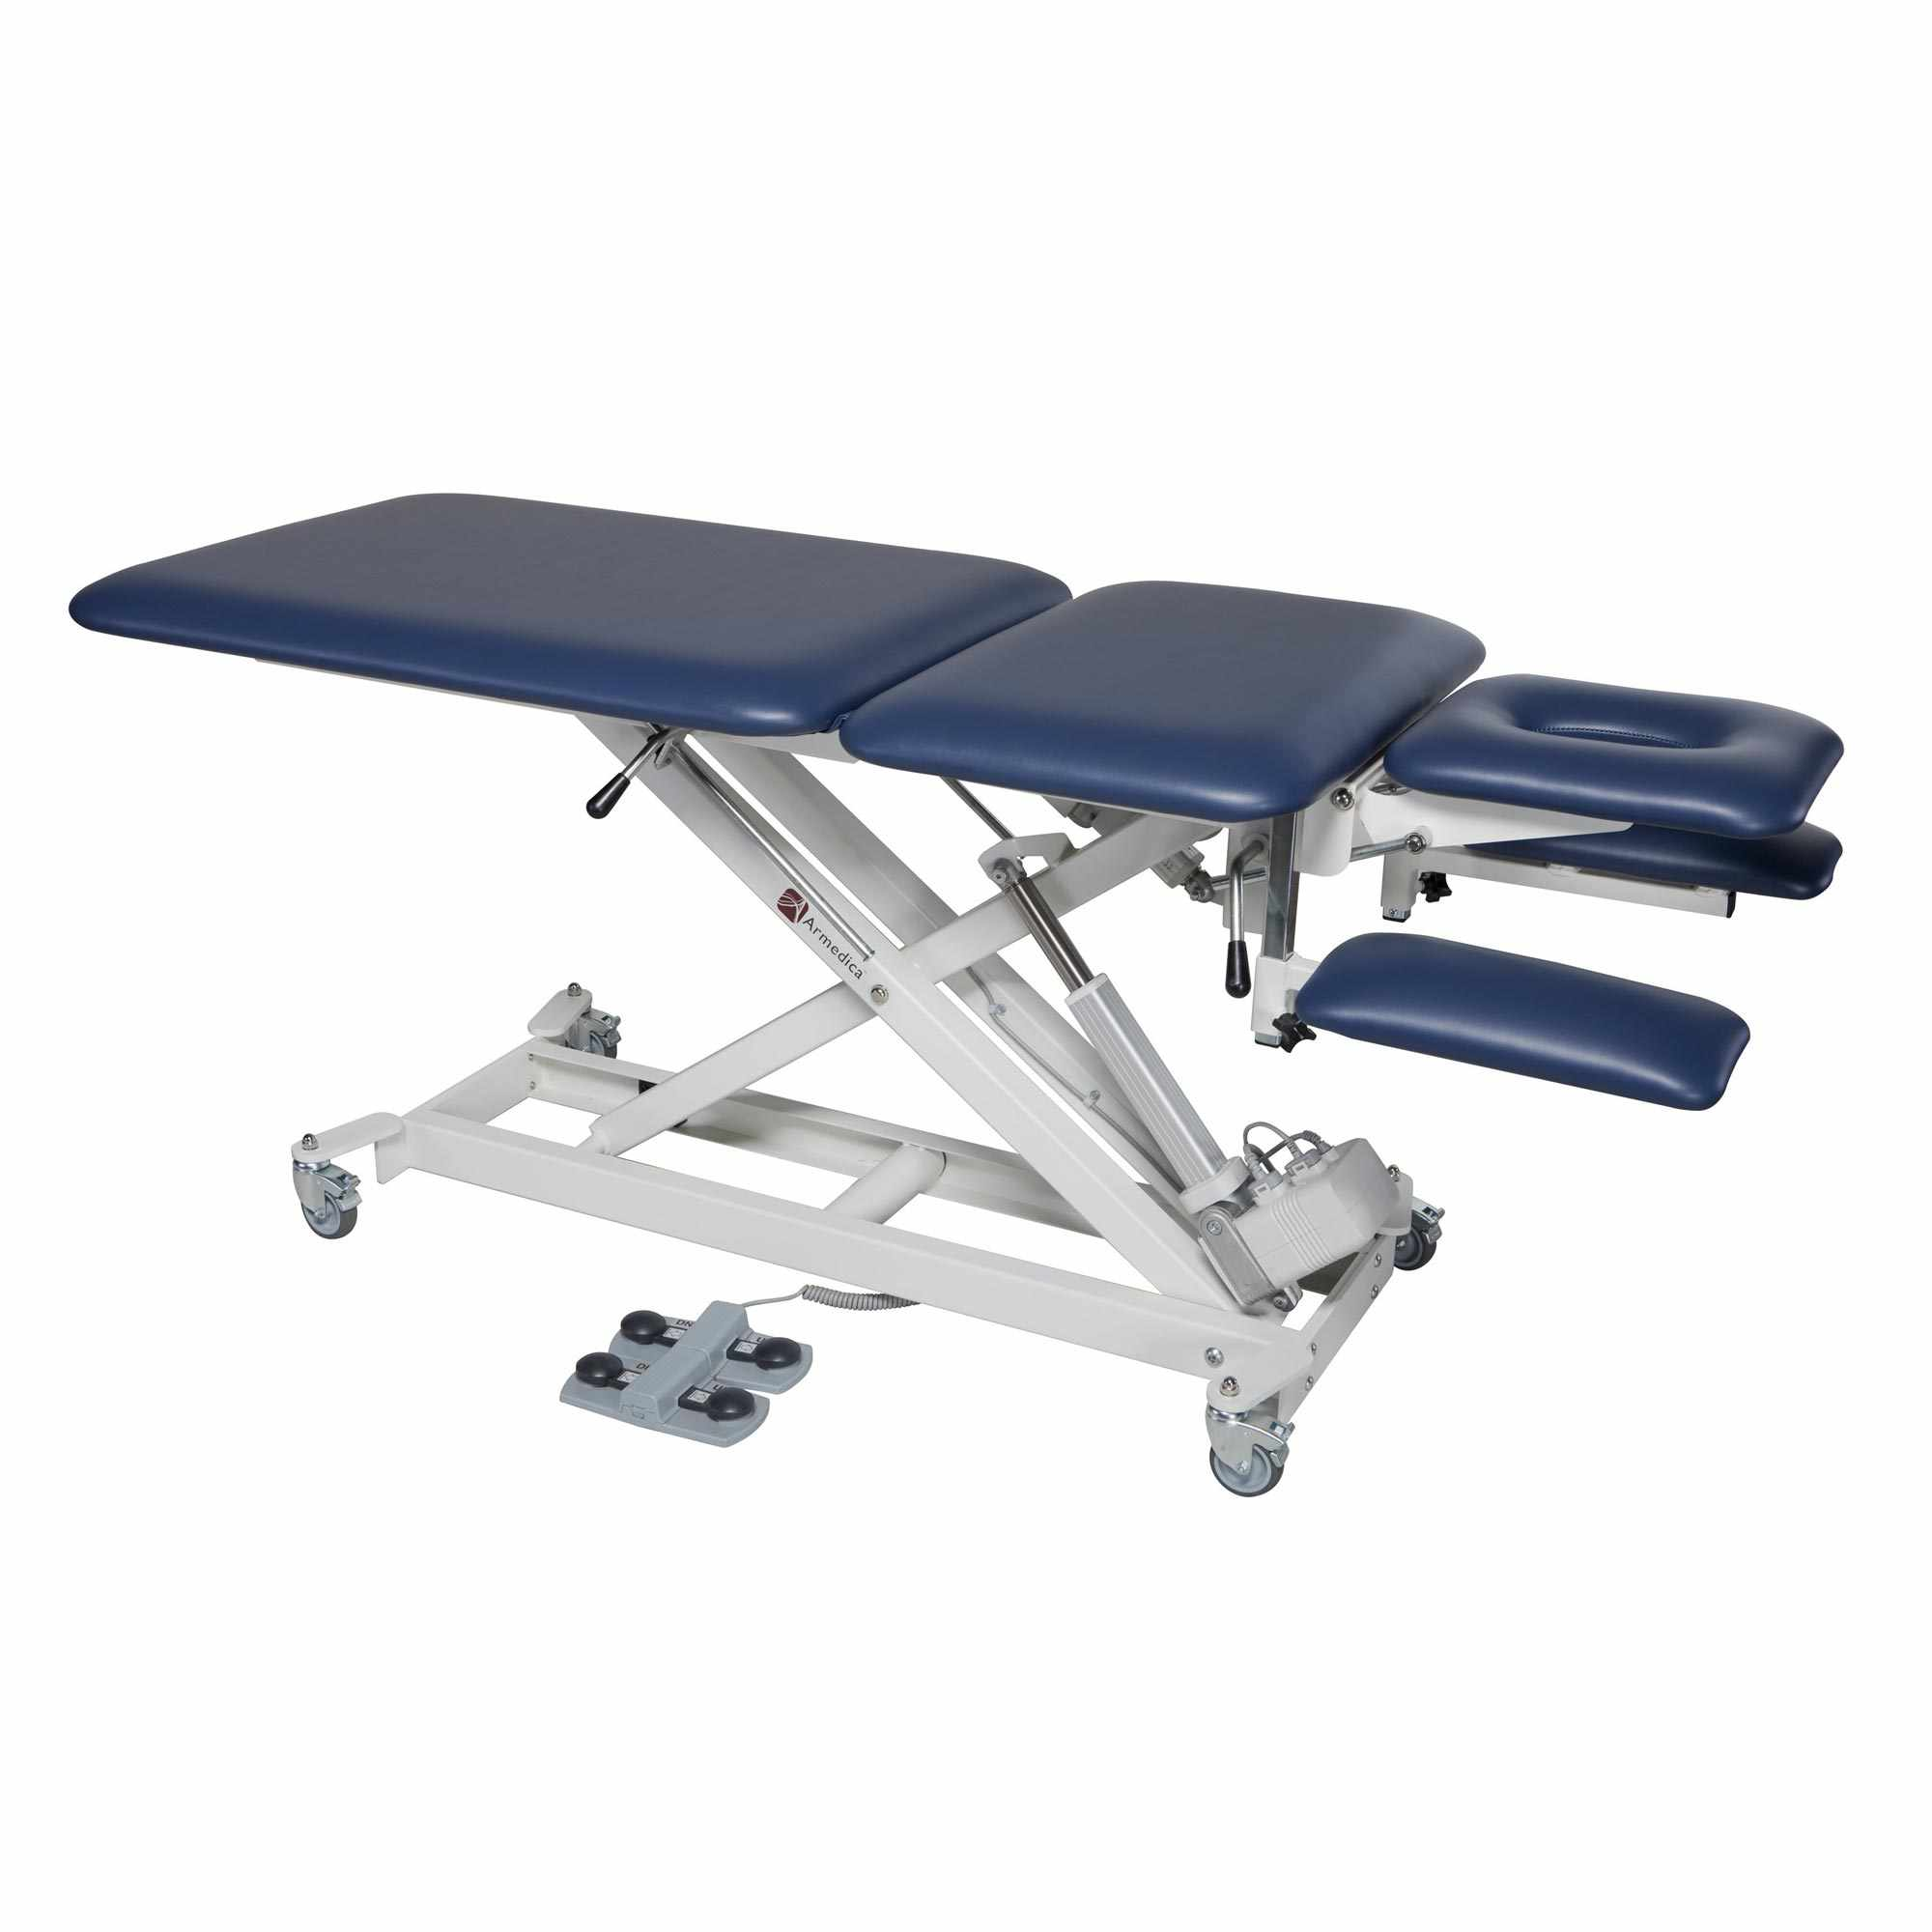 Armedica AM-BAX 5000 treatment table